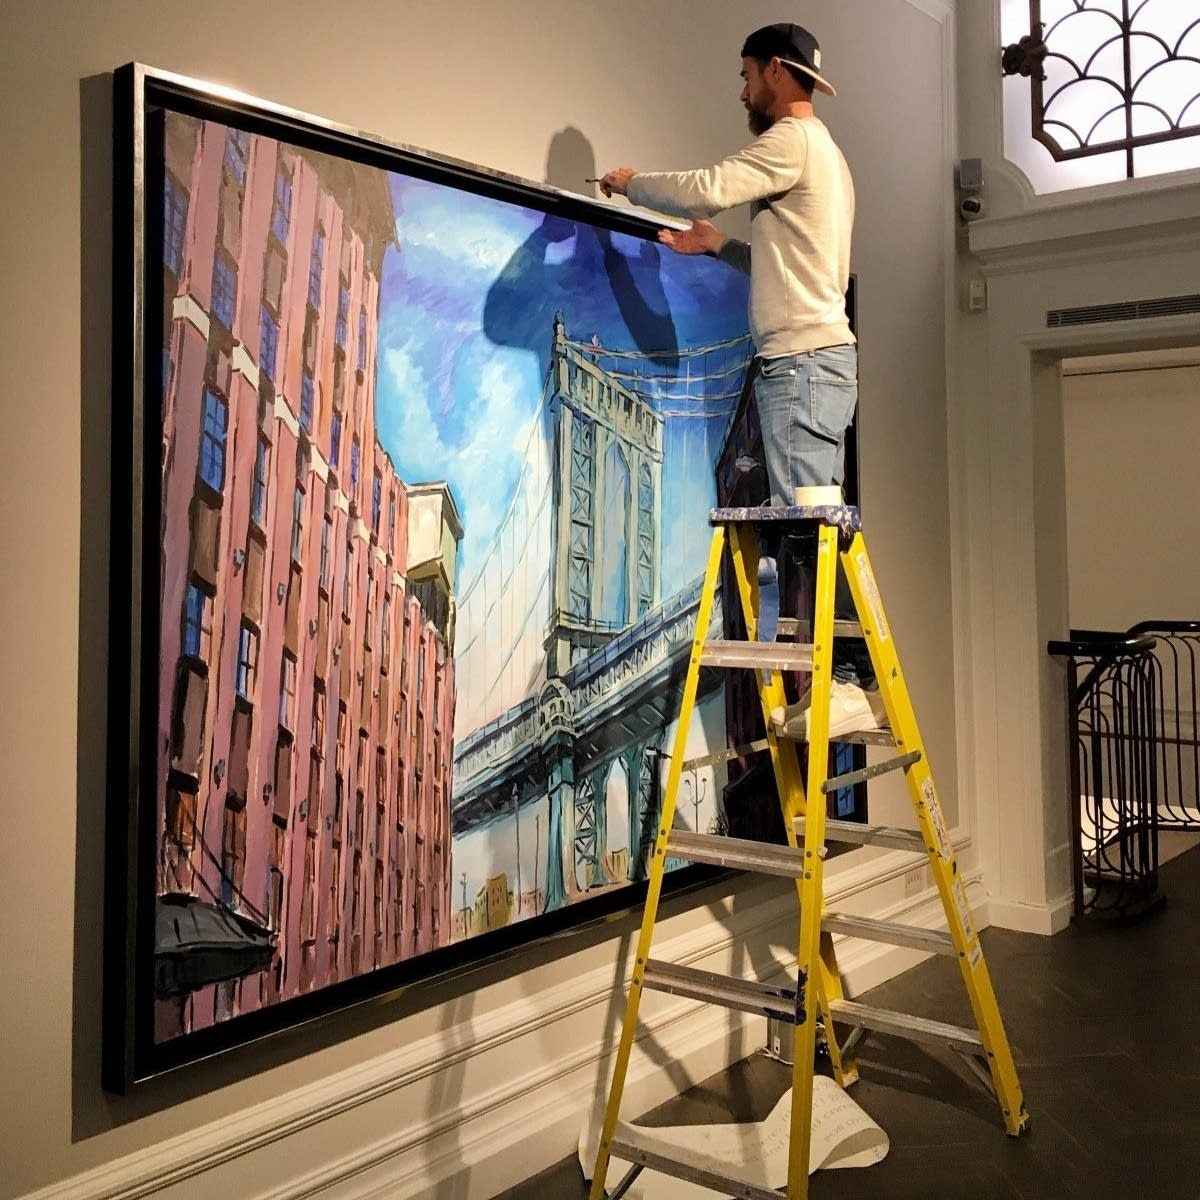 Installing a Bob Dylan painting